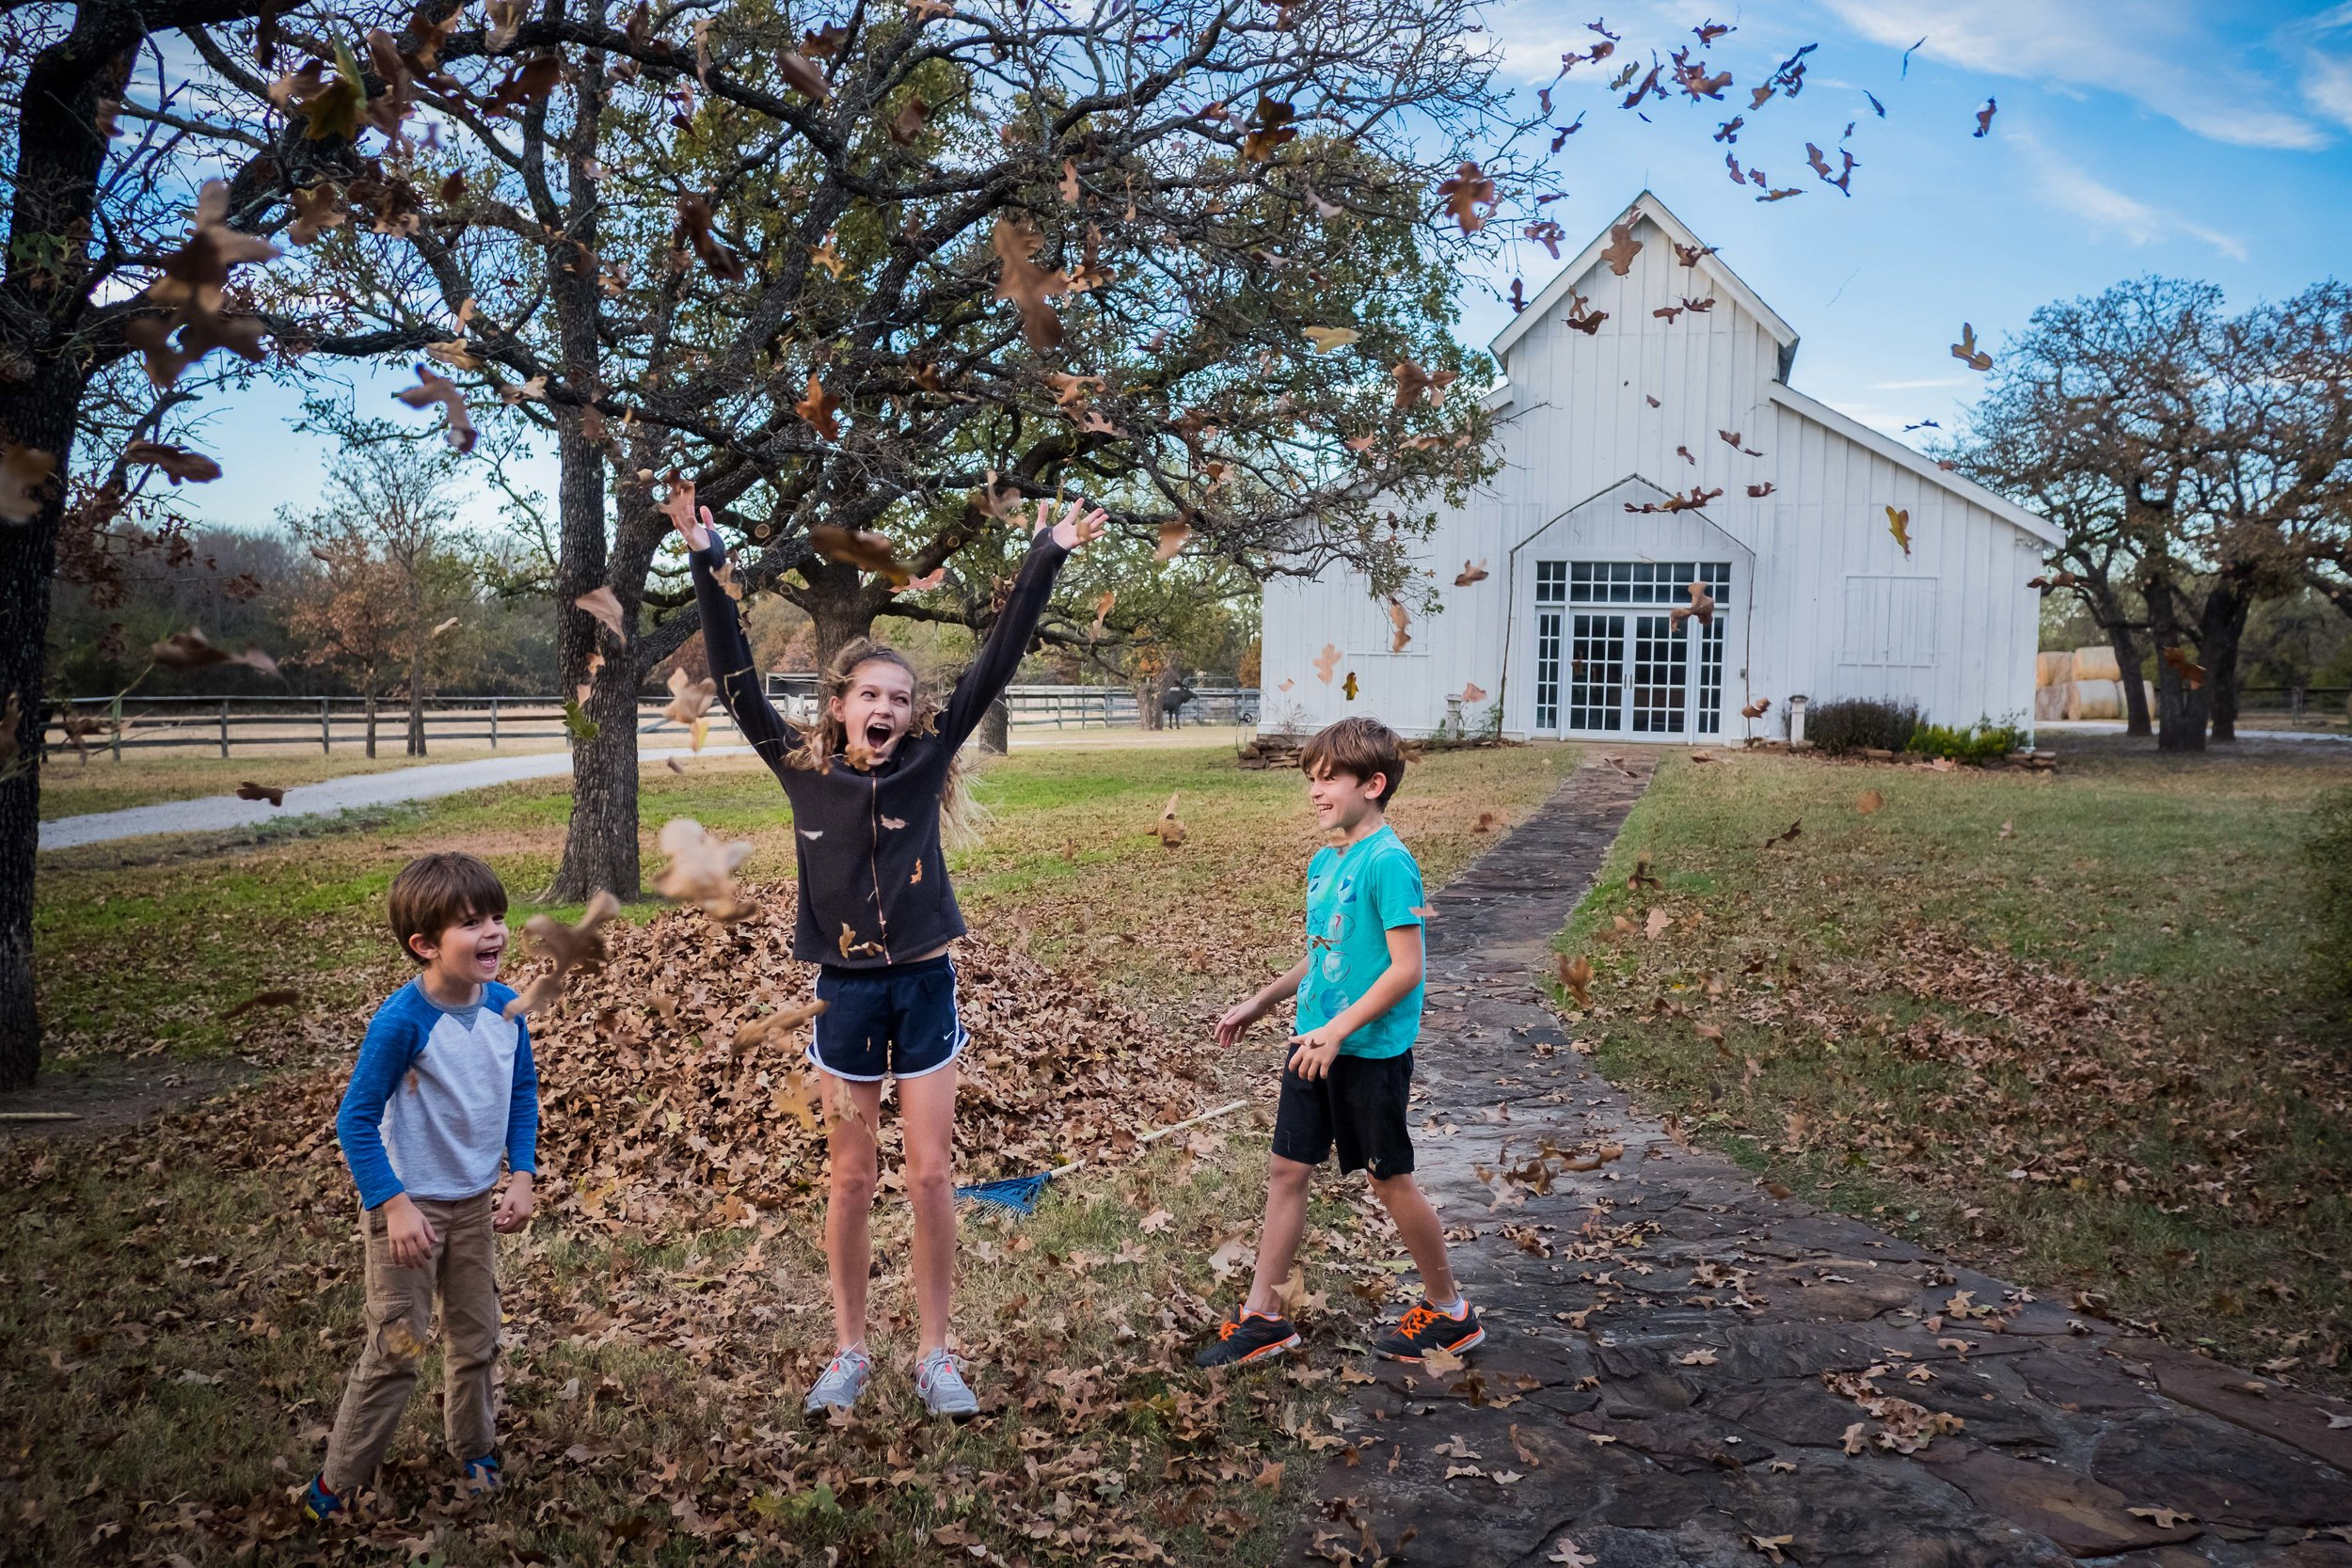 They're young enough to think raking is fun. Well, it probably is when you get to jump in them and throw them in the air instead of stuffing them into lawn bags.